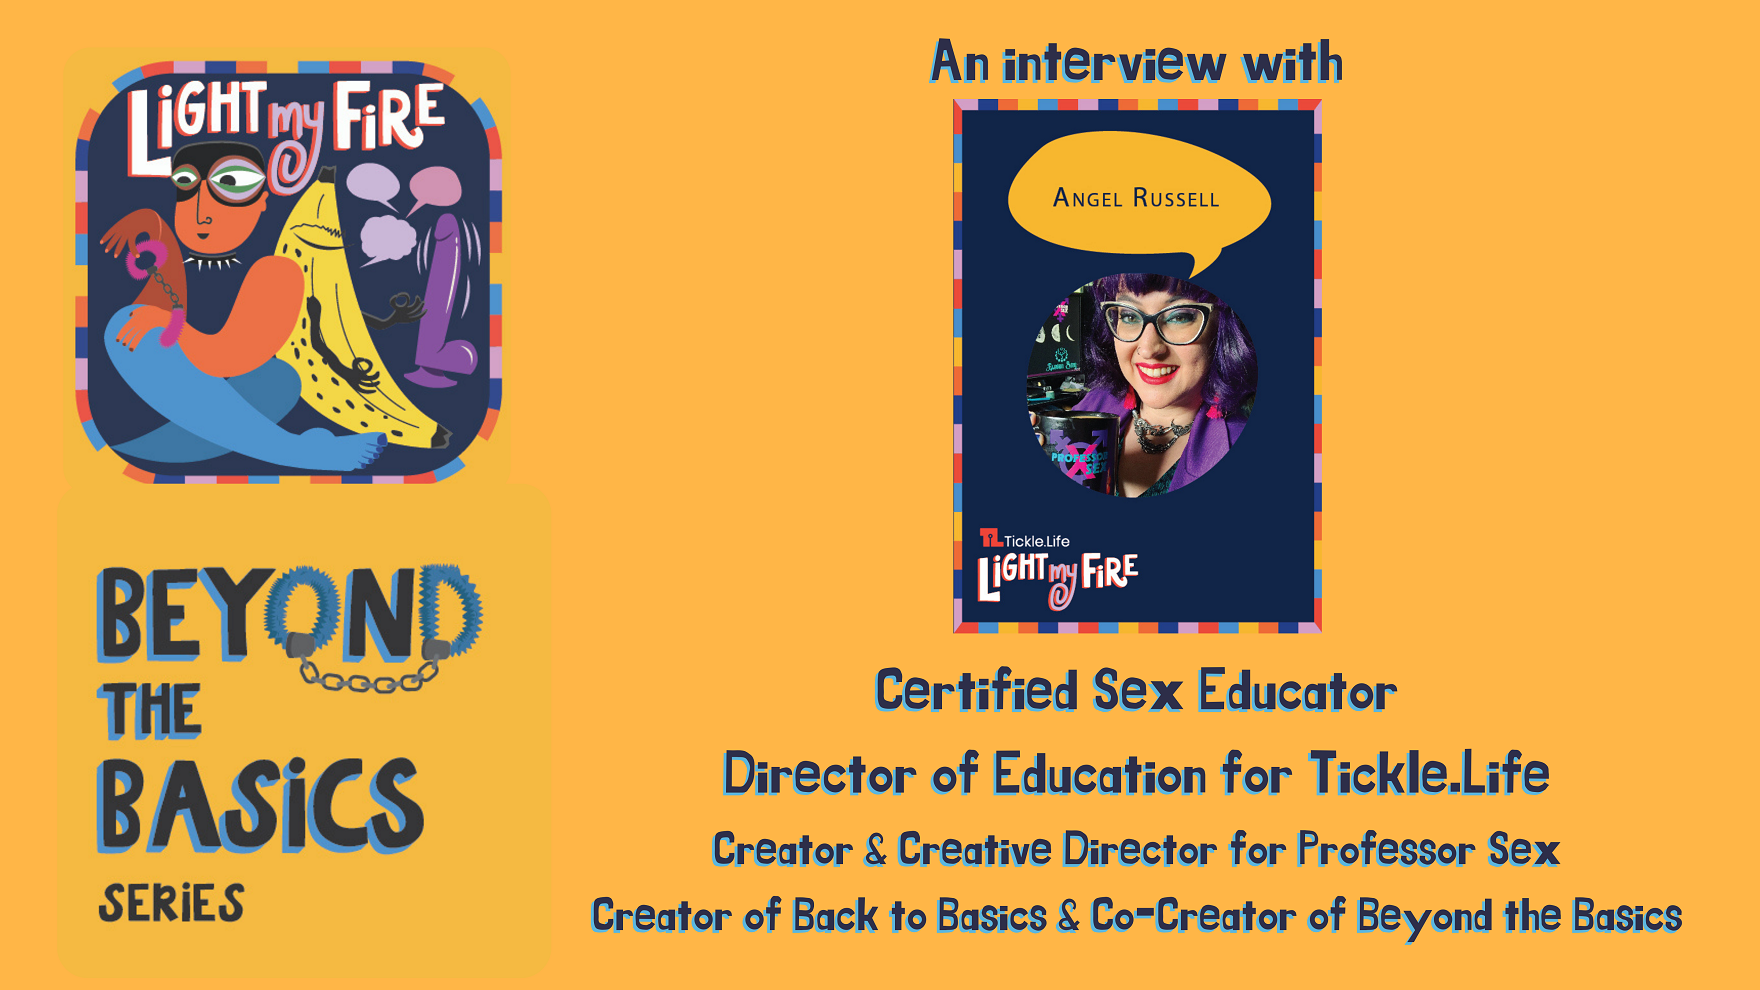 Interview with Angel Russell, Director of Education, Tickle.Life